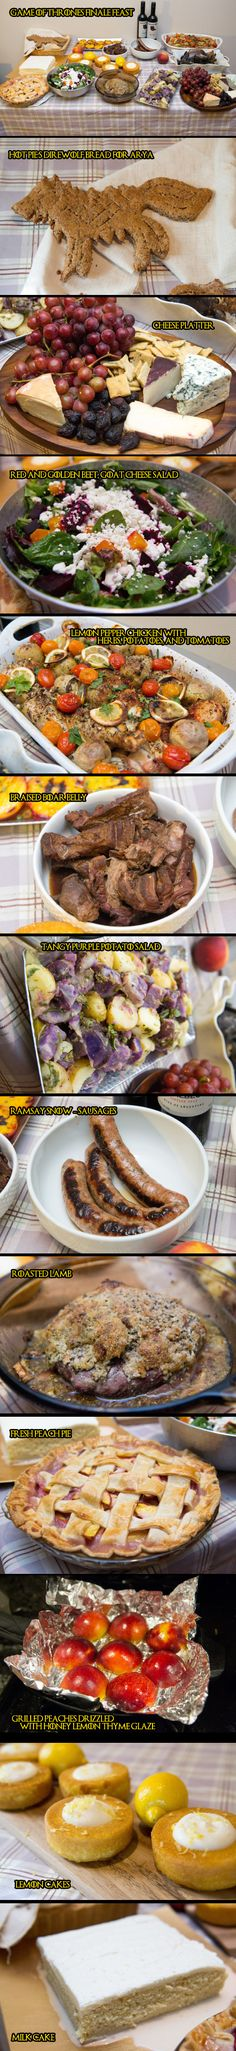 Game of Thrones Feast: food from Dorne. This region has food with a very Mediterranean feel to it. Every menu item here -- and MANY more -- is available from this amazing GoT fan website. Rachel is a GoT chef par excellence! Medieval Game of Thrones Gathering Party Theme & Decorating Ideas